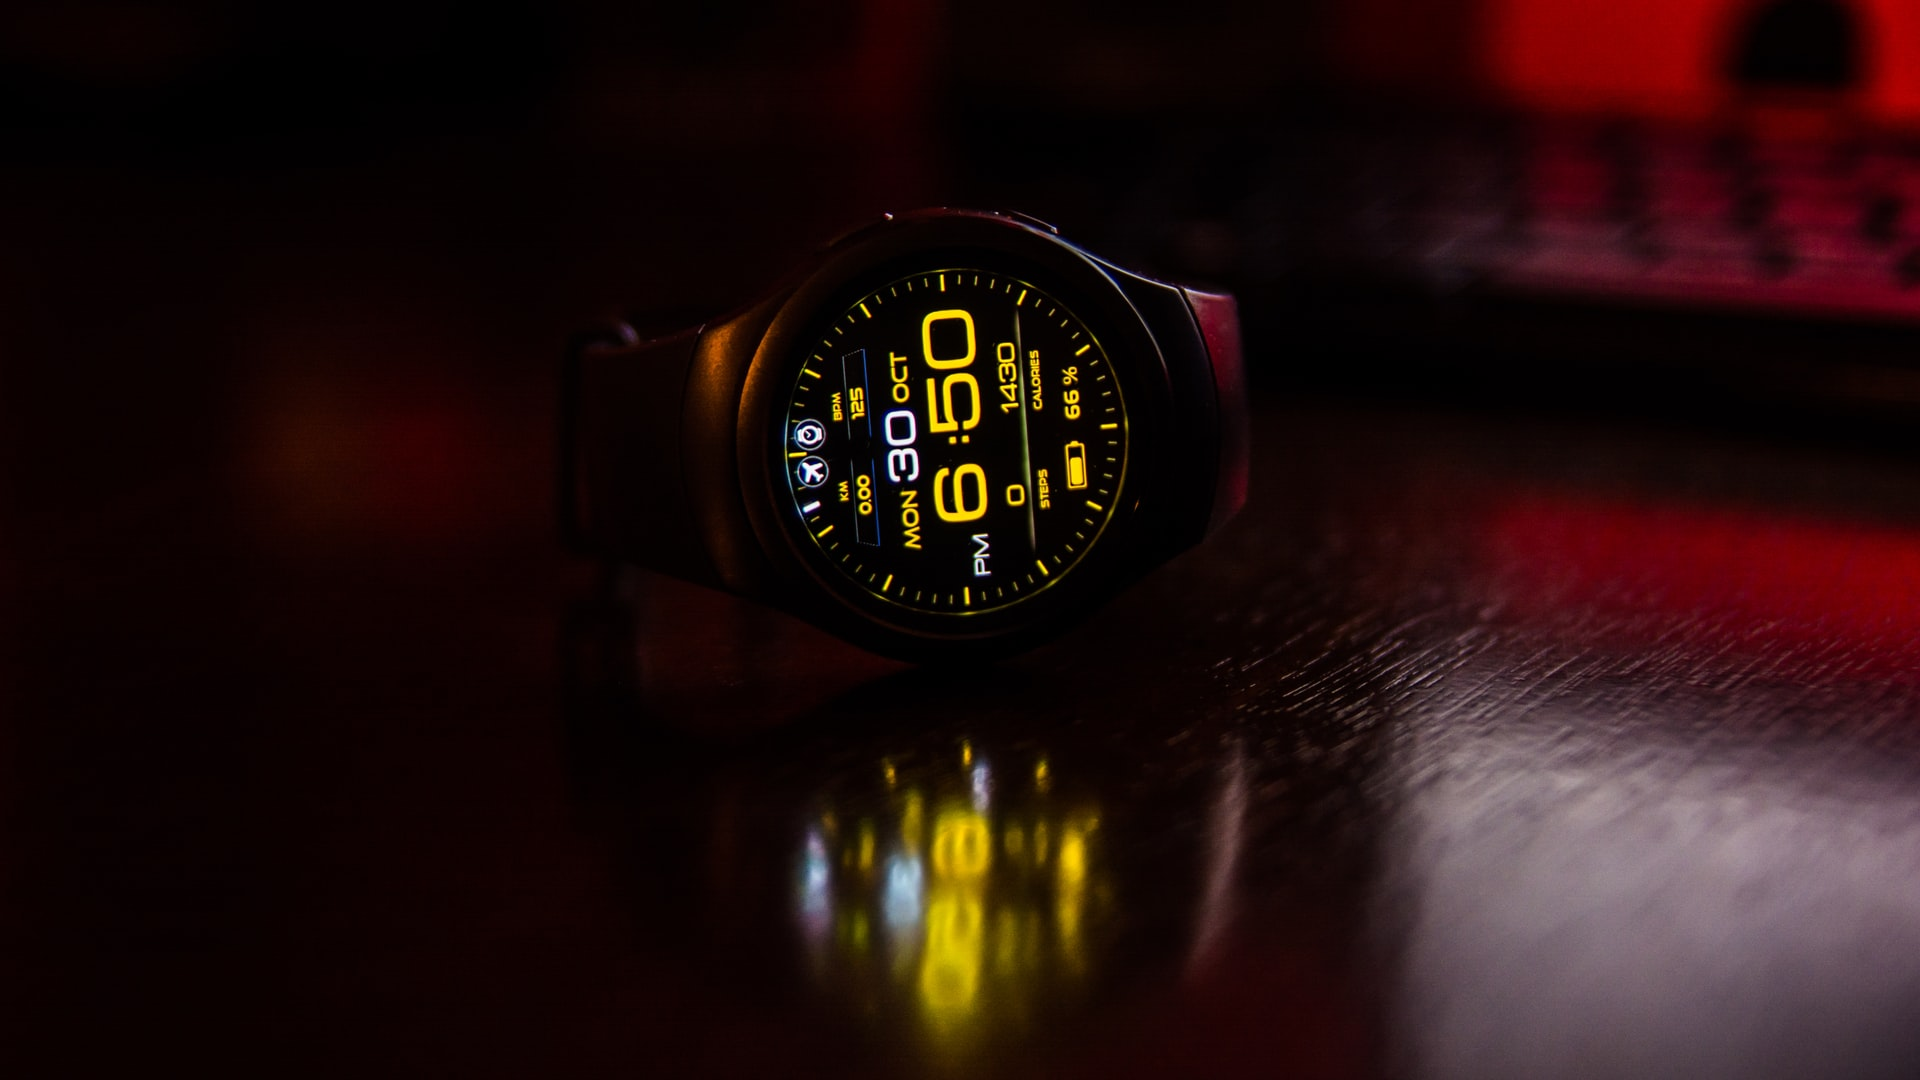 Samsung Watches in Australia - Why You Should Buy One?